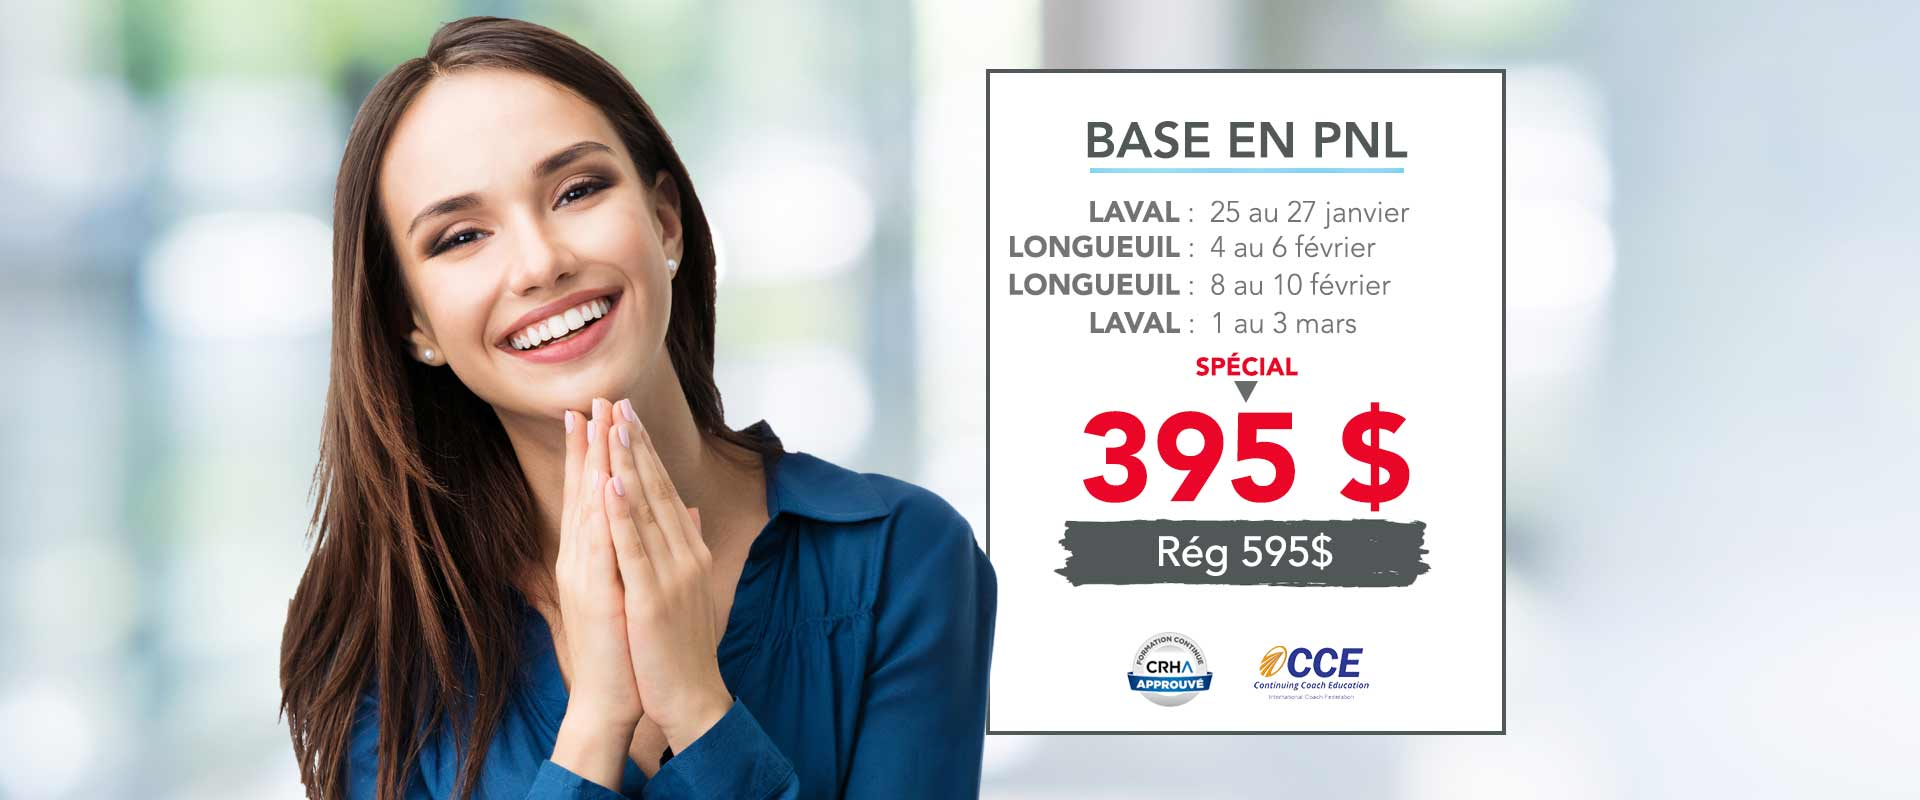 devenir coach base en pnl